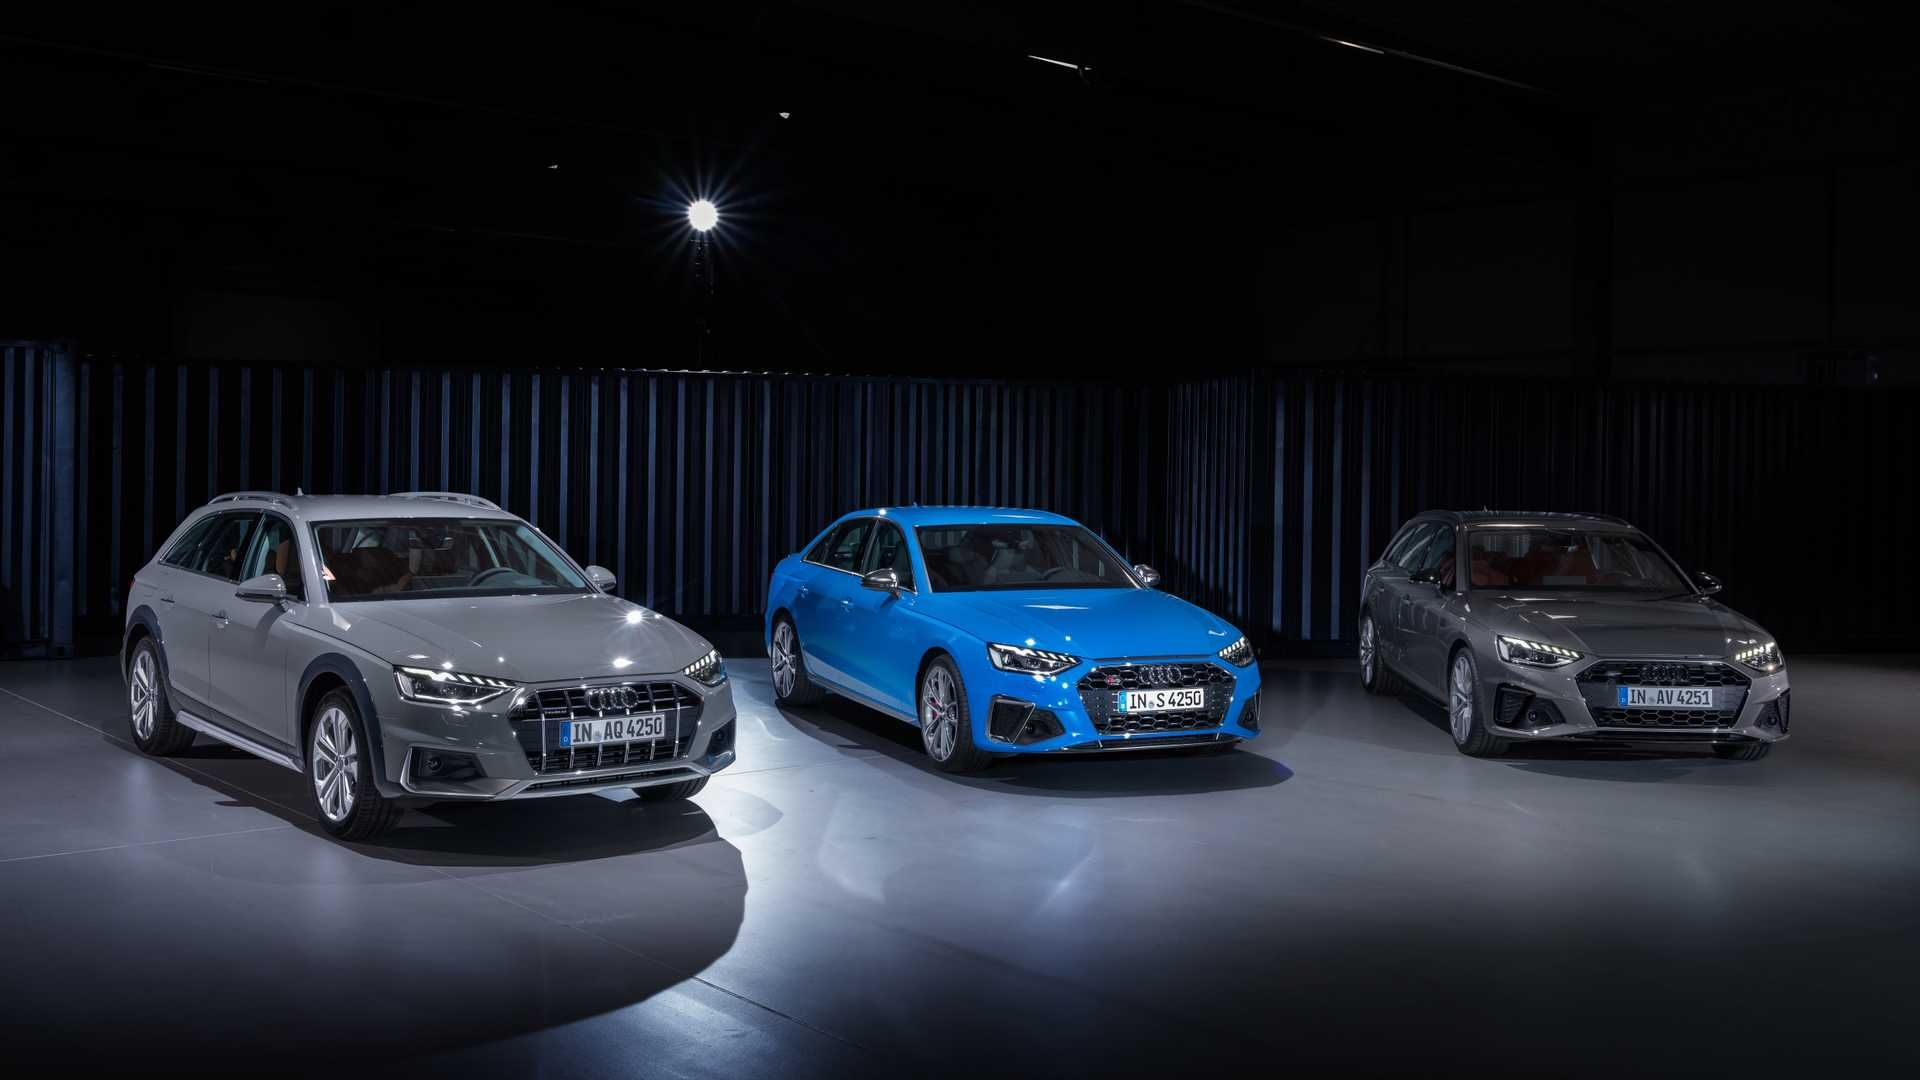 2020 Audi A4 Facelift Allroad And Avant Models Revealed Audi Sports Car Audi A4 Sports Cars Luxury